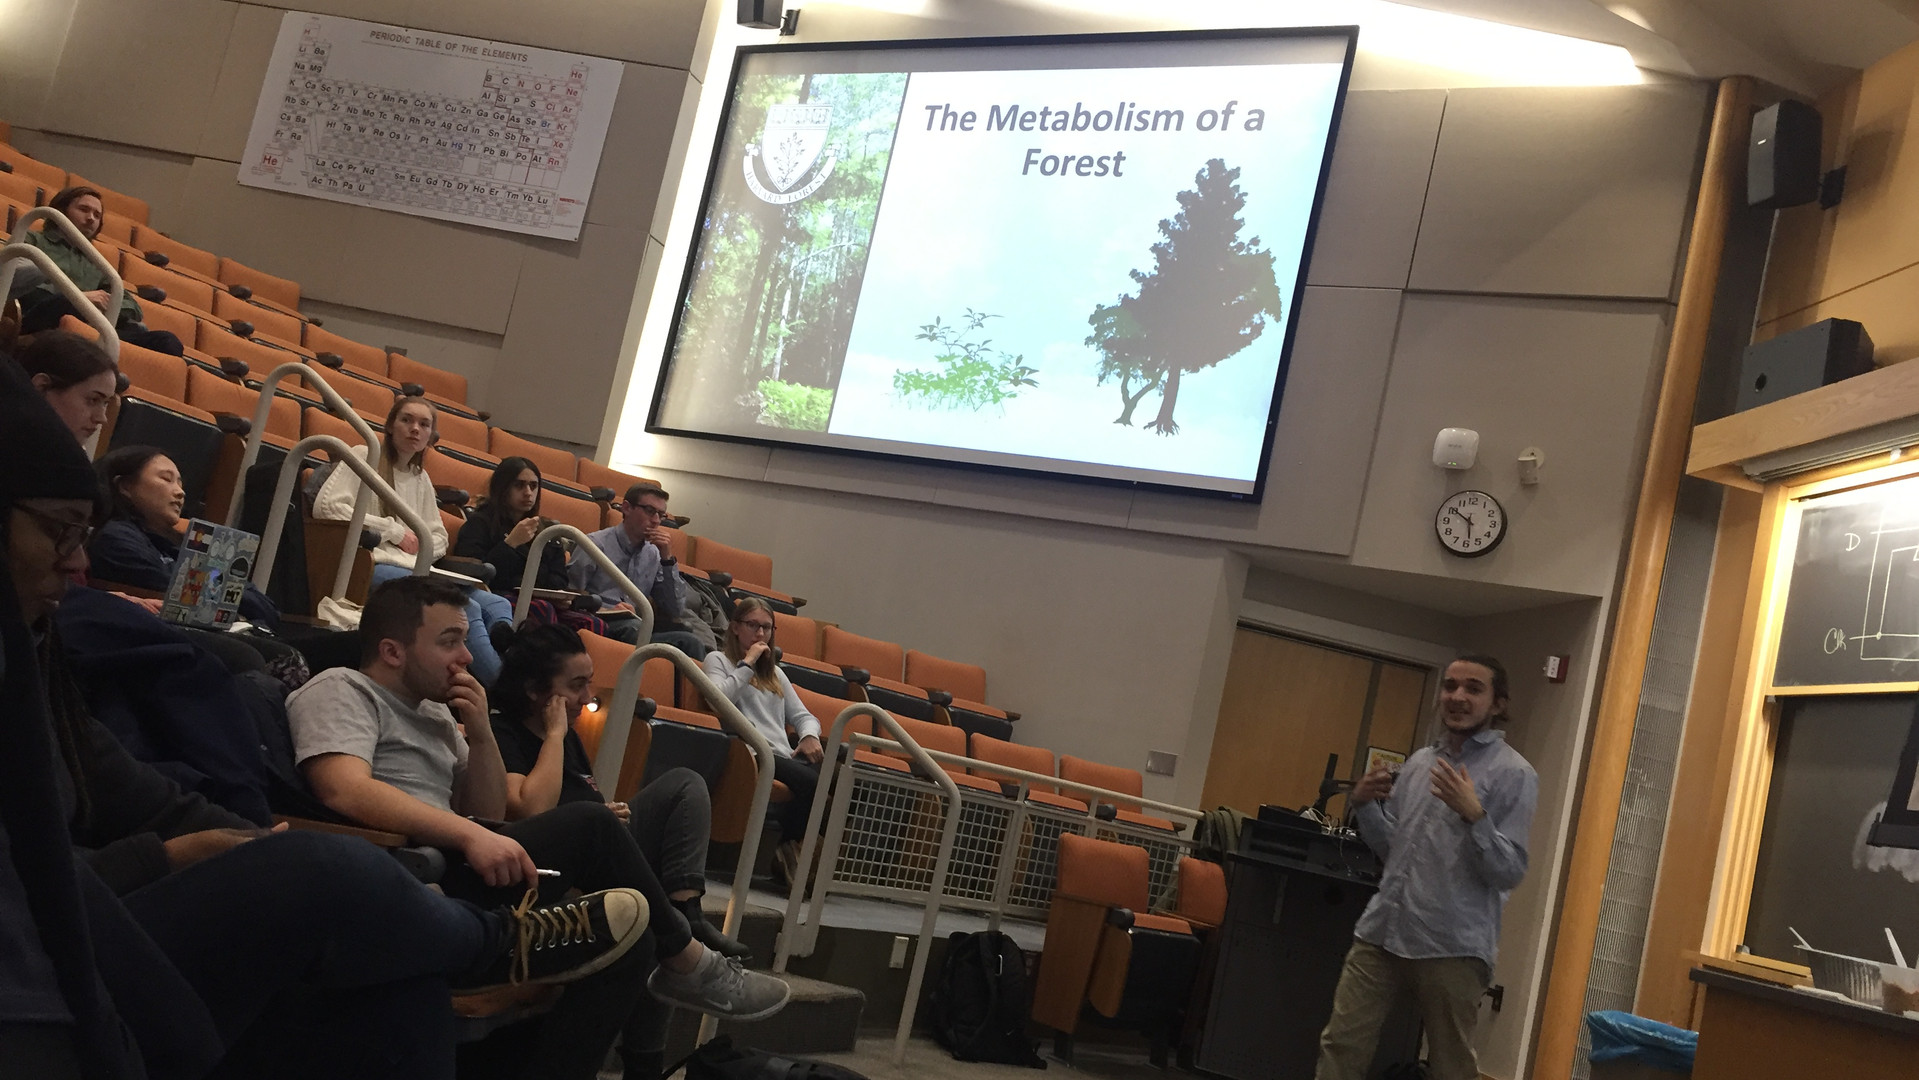 Marcos Rodriguez ('20) presents on his summer research exoerience at Harvard Forest at the Undergraduate Research Symposium